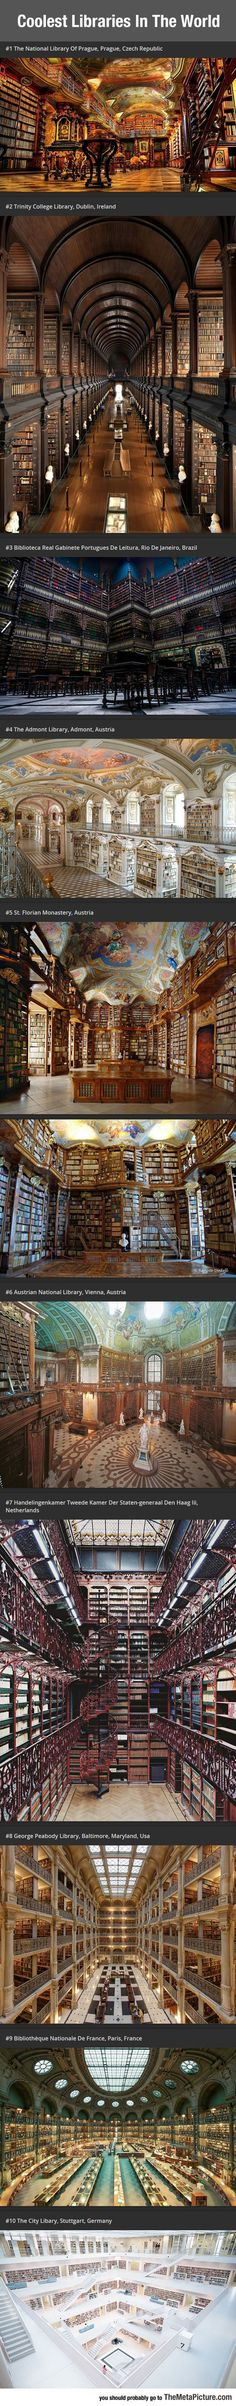 Best Libraries In The World. Need to go to all of them, been to #2!!!!!